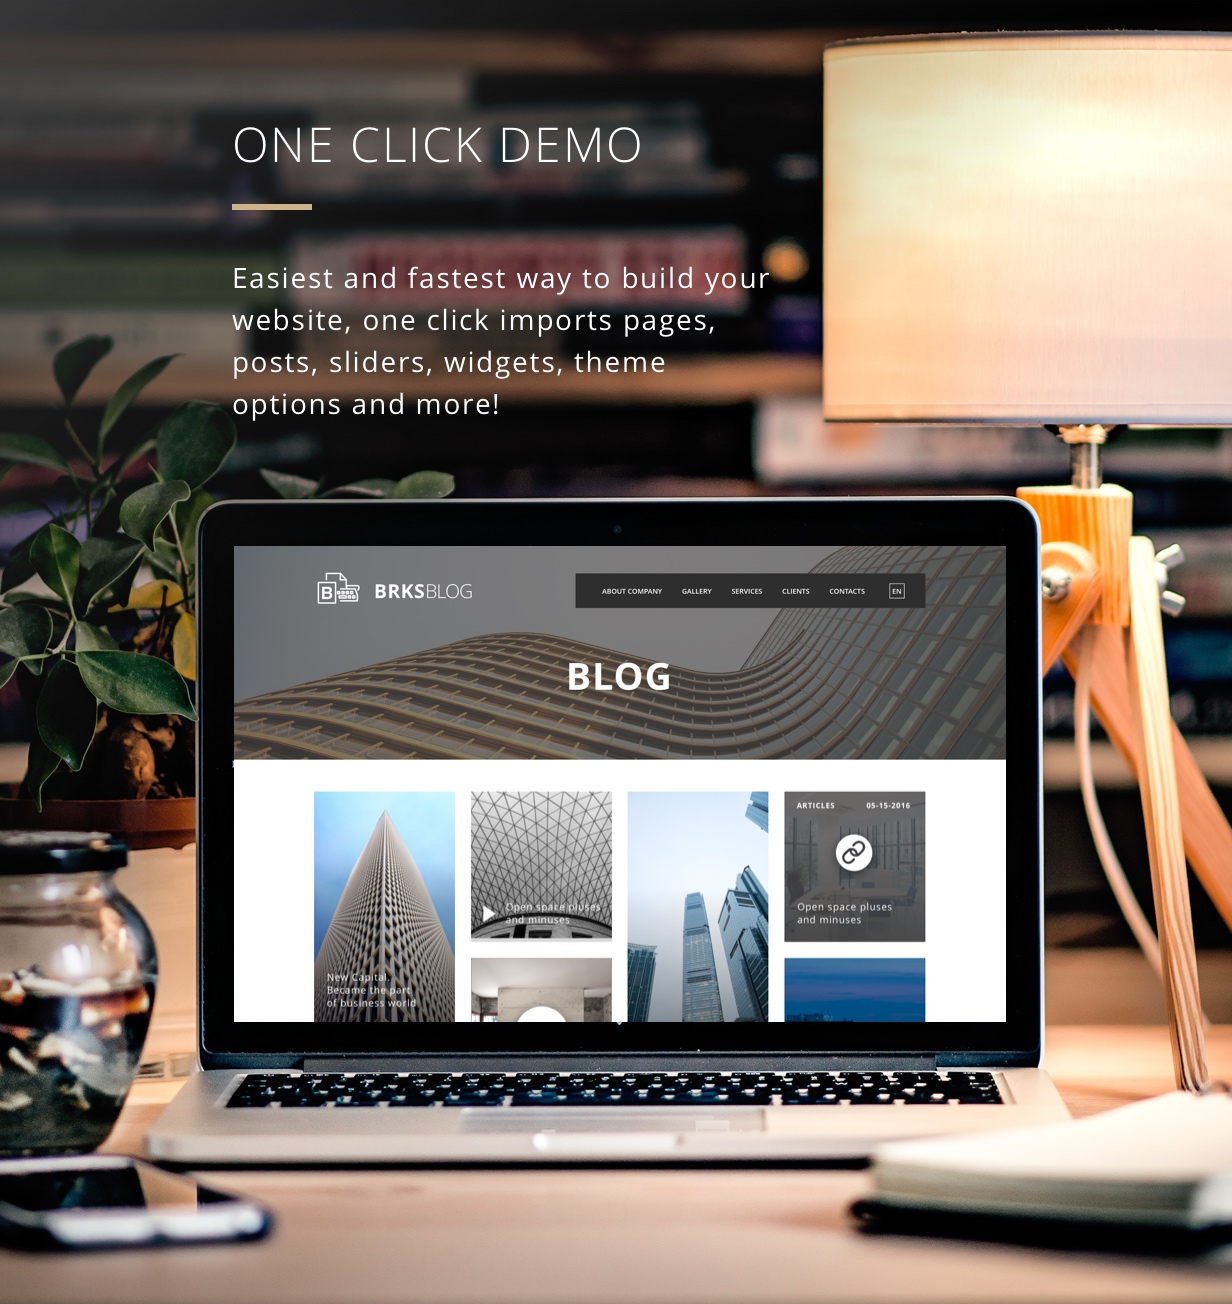 One click demo. Easest and fastest way to build your website.